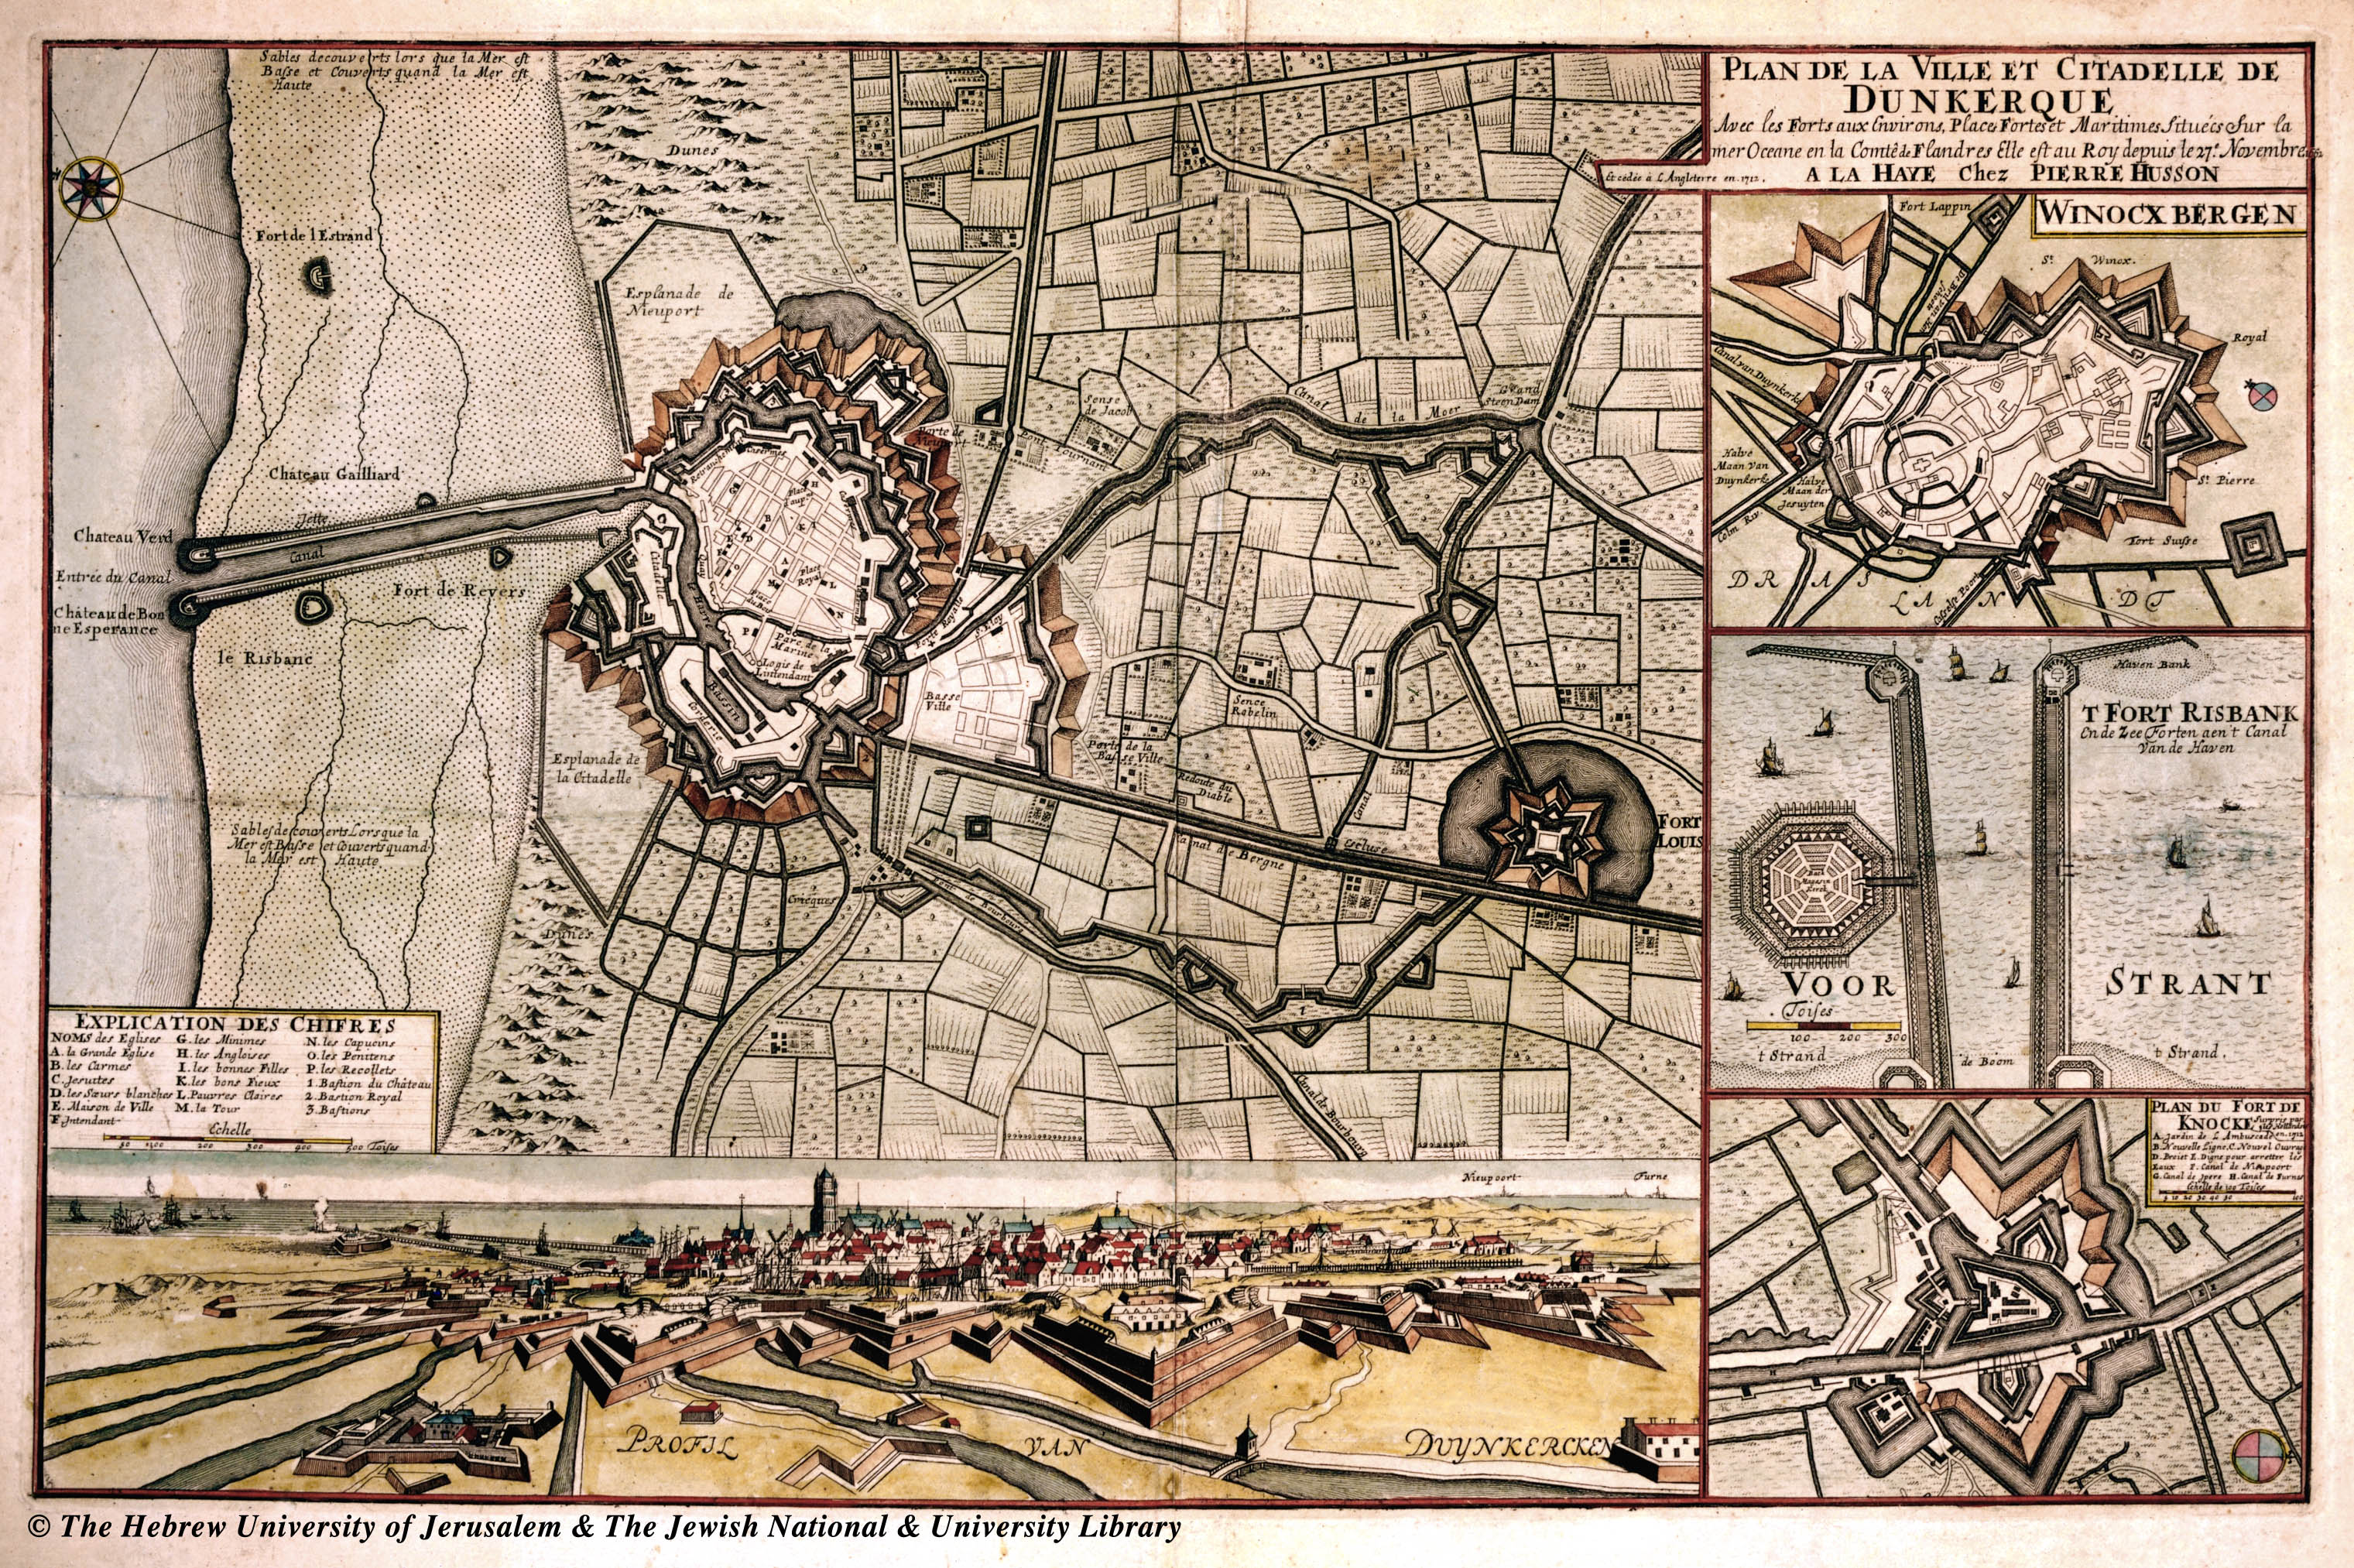 map of dunkerque 1712 pierre husson. Black Bedroom Furniture Sets. Home Design Ideas